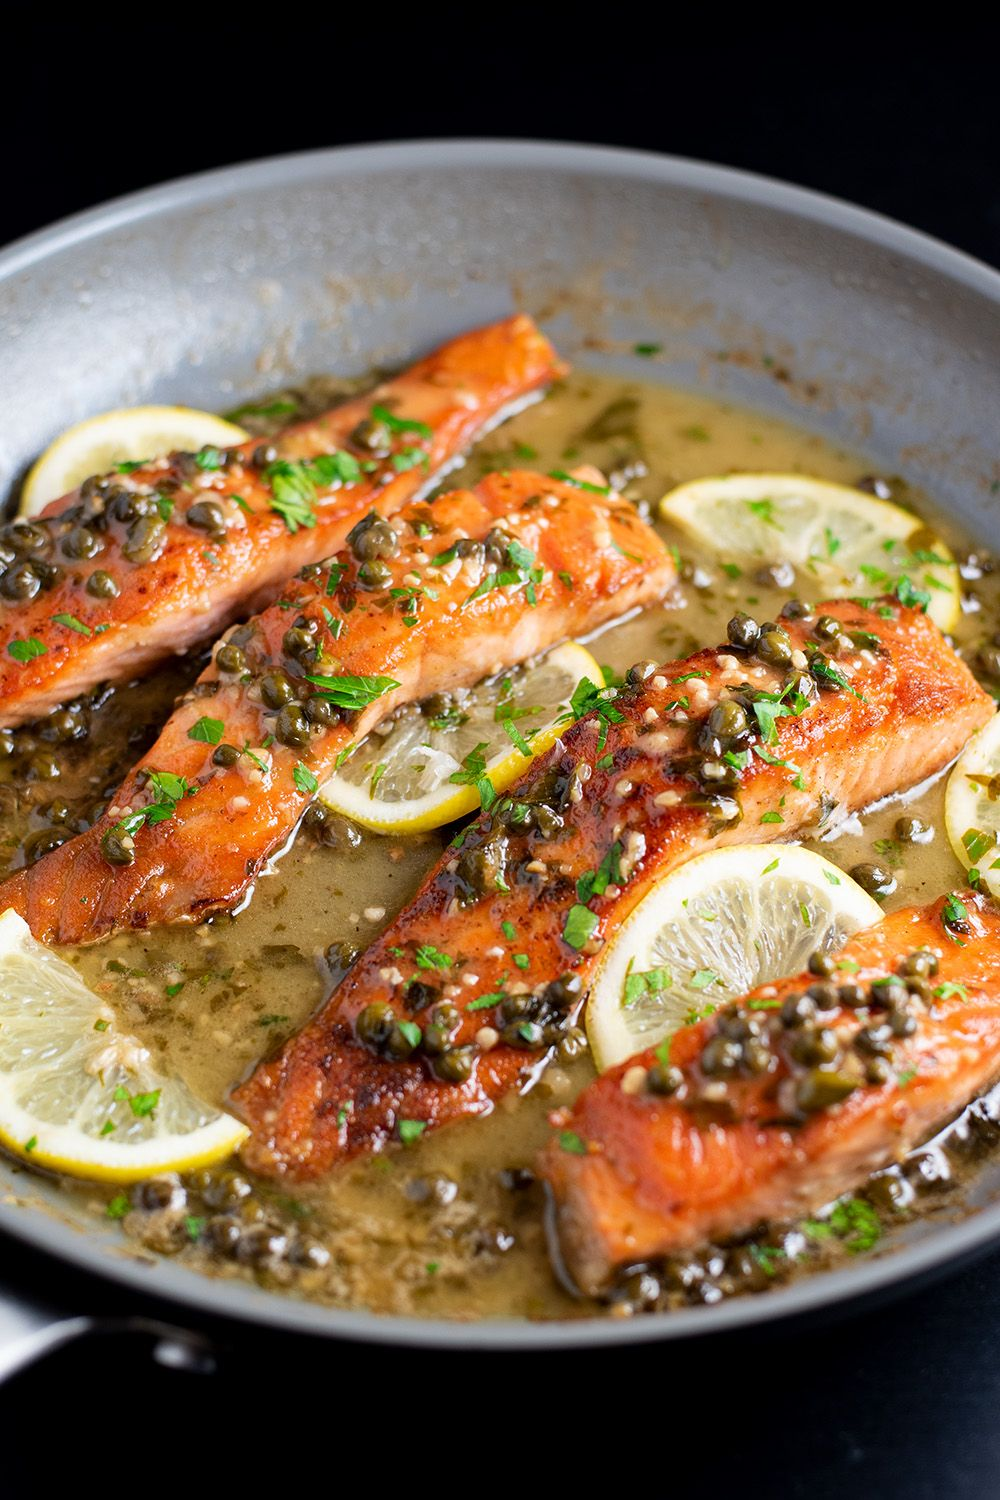 d3dd1555b2bfd55011f6bb8173532f4e - Better Homes And Gardens Salmon Recipes 2019